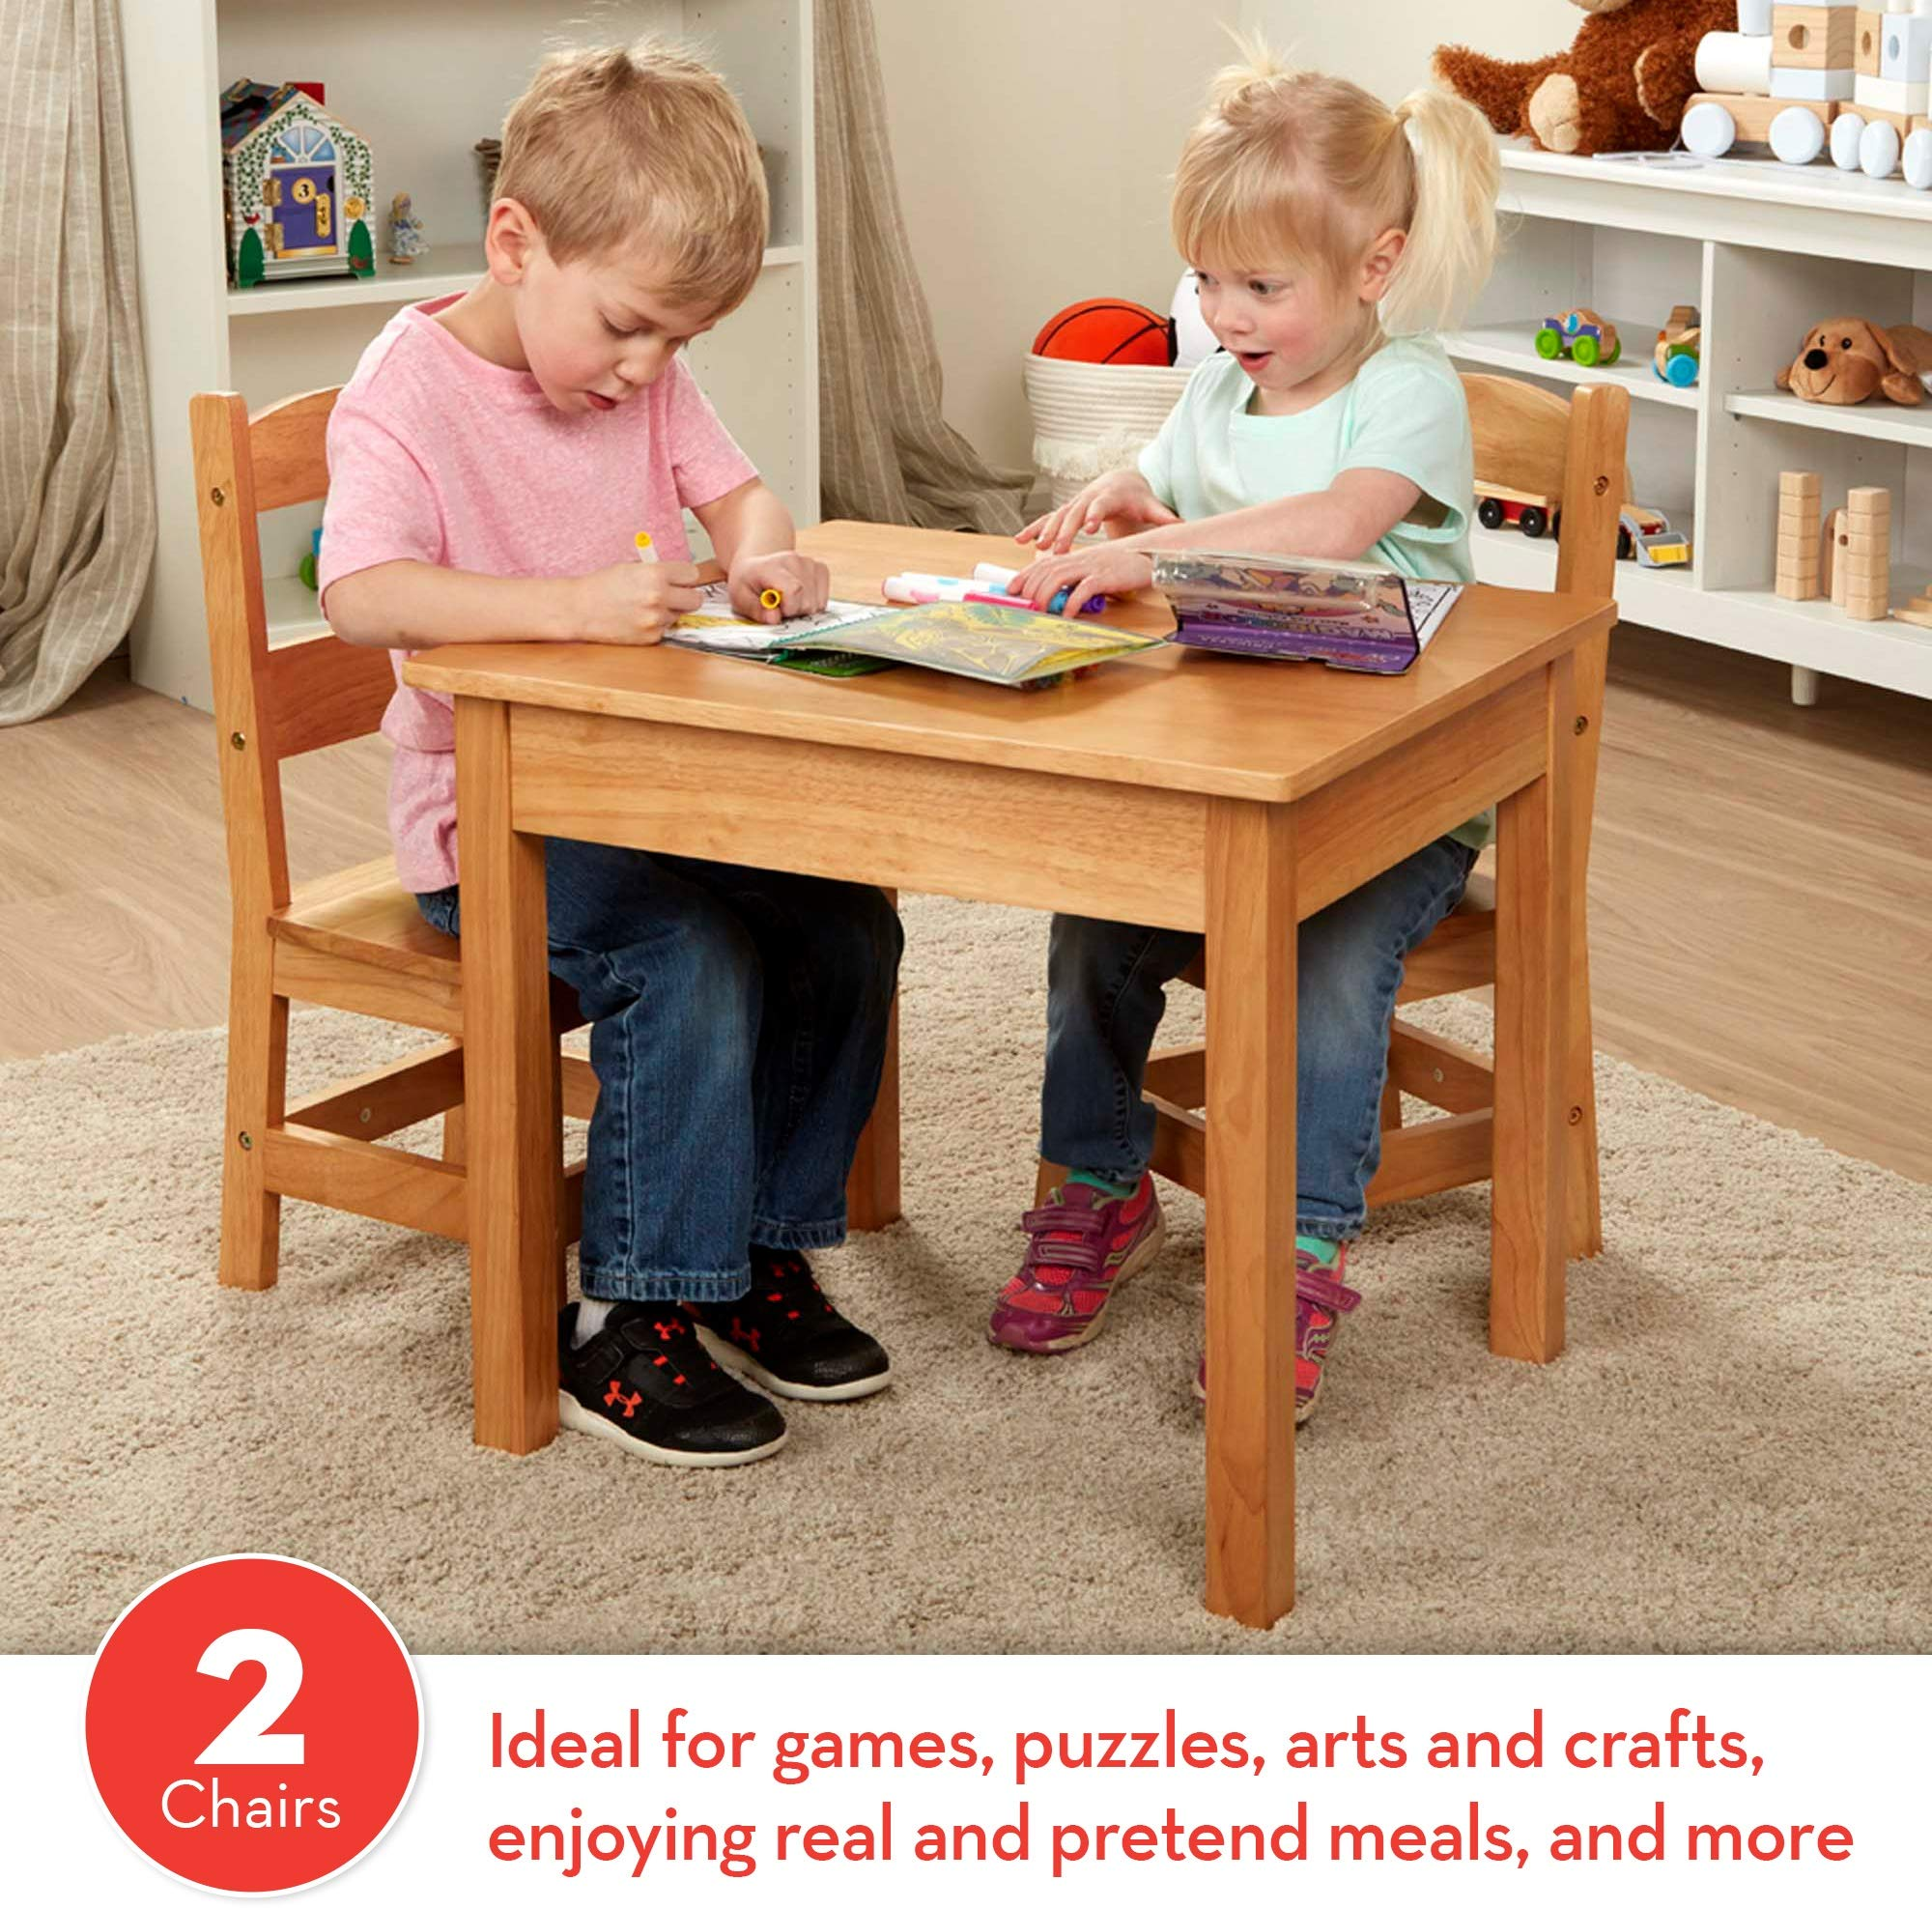 Melissa & Doug Wooden Table and 2 Chairs – Natural